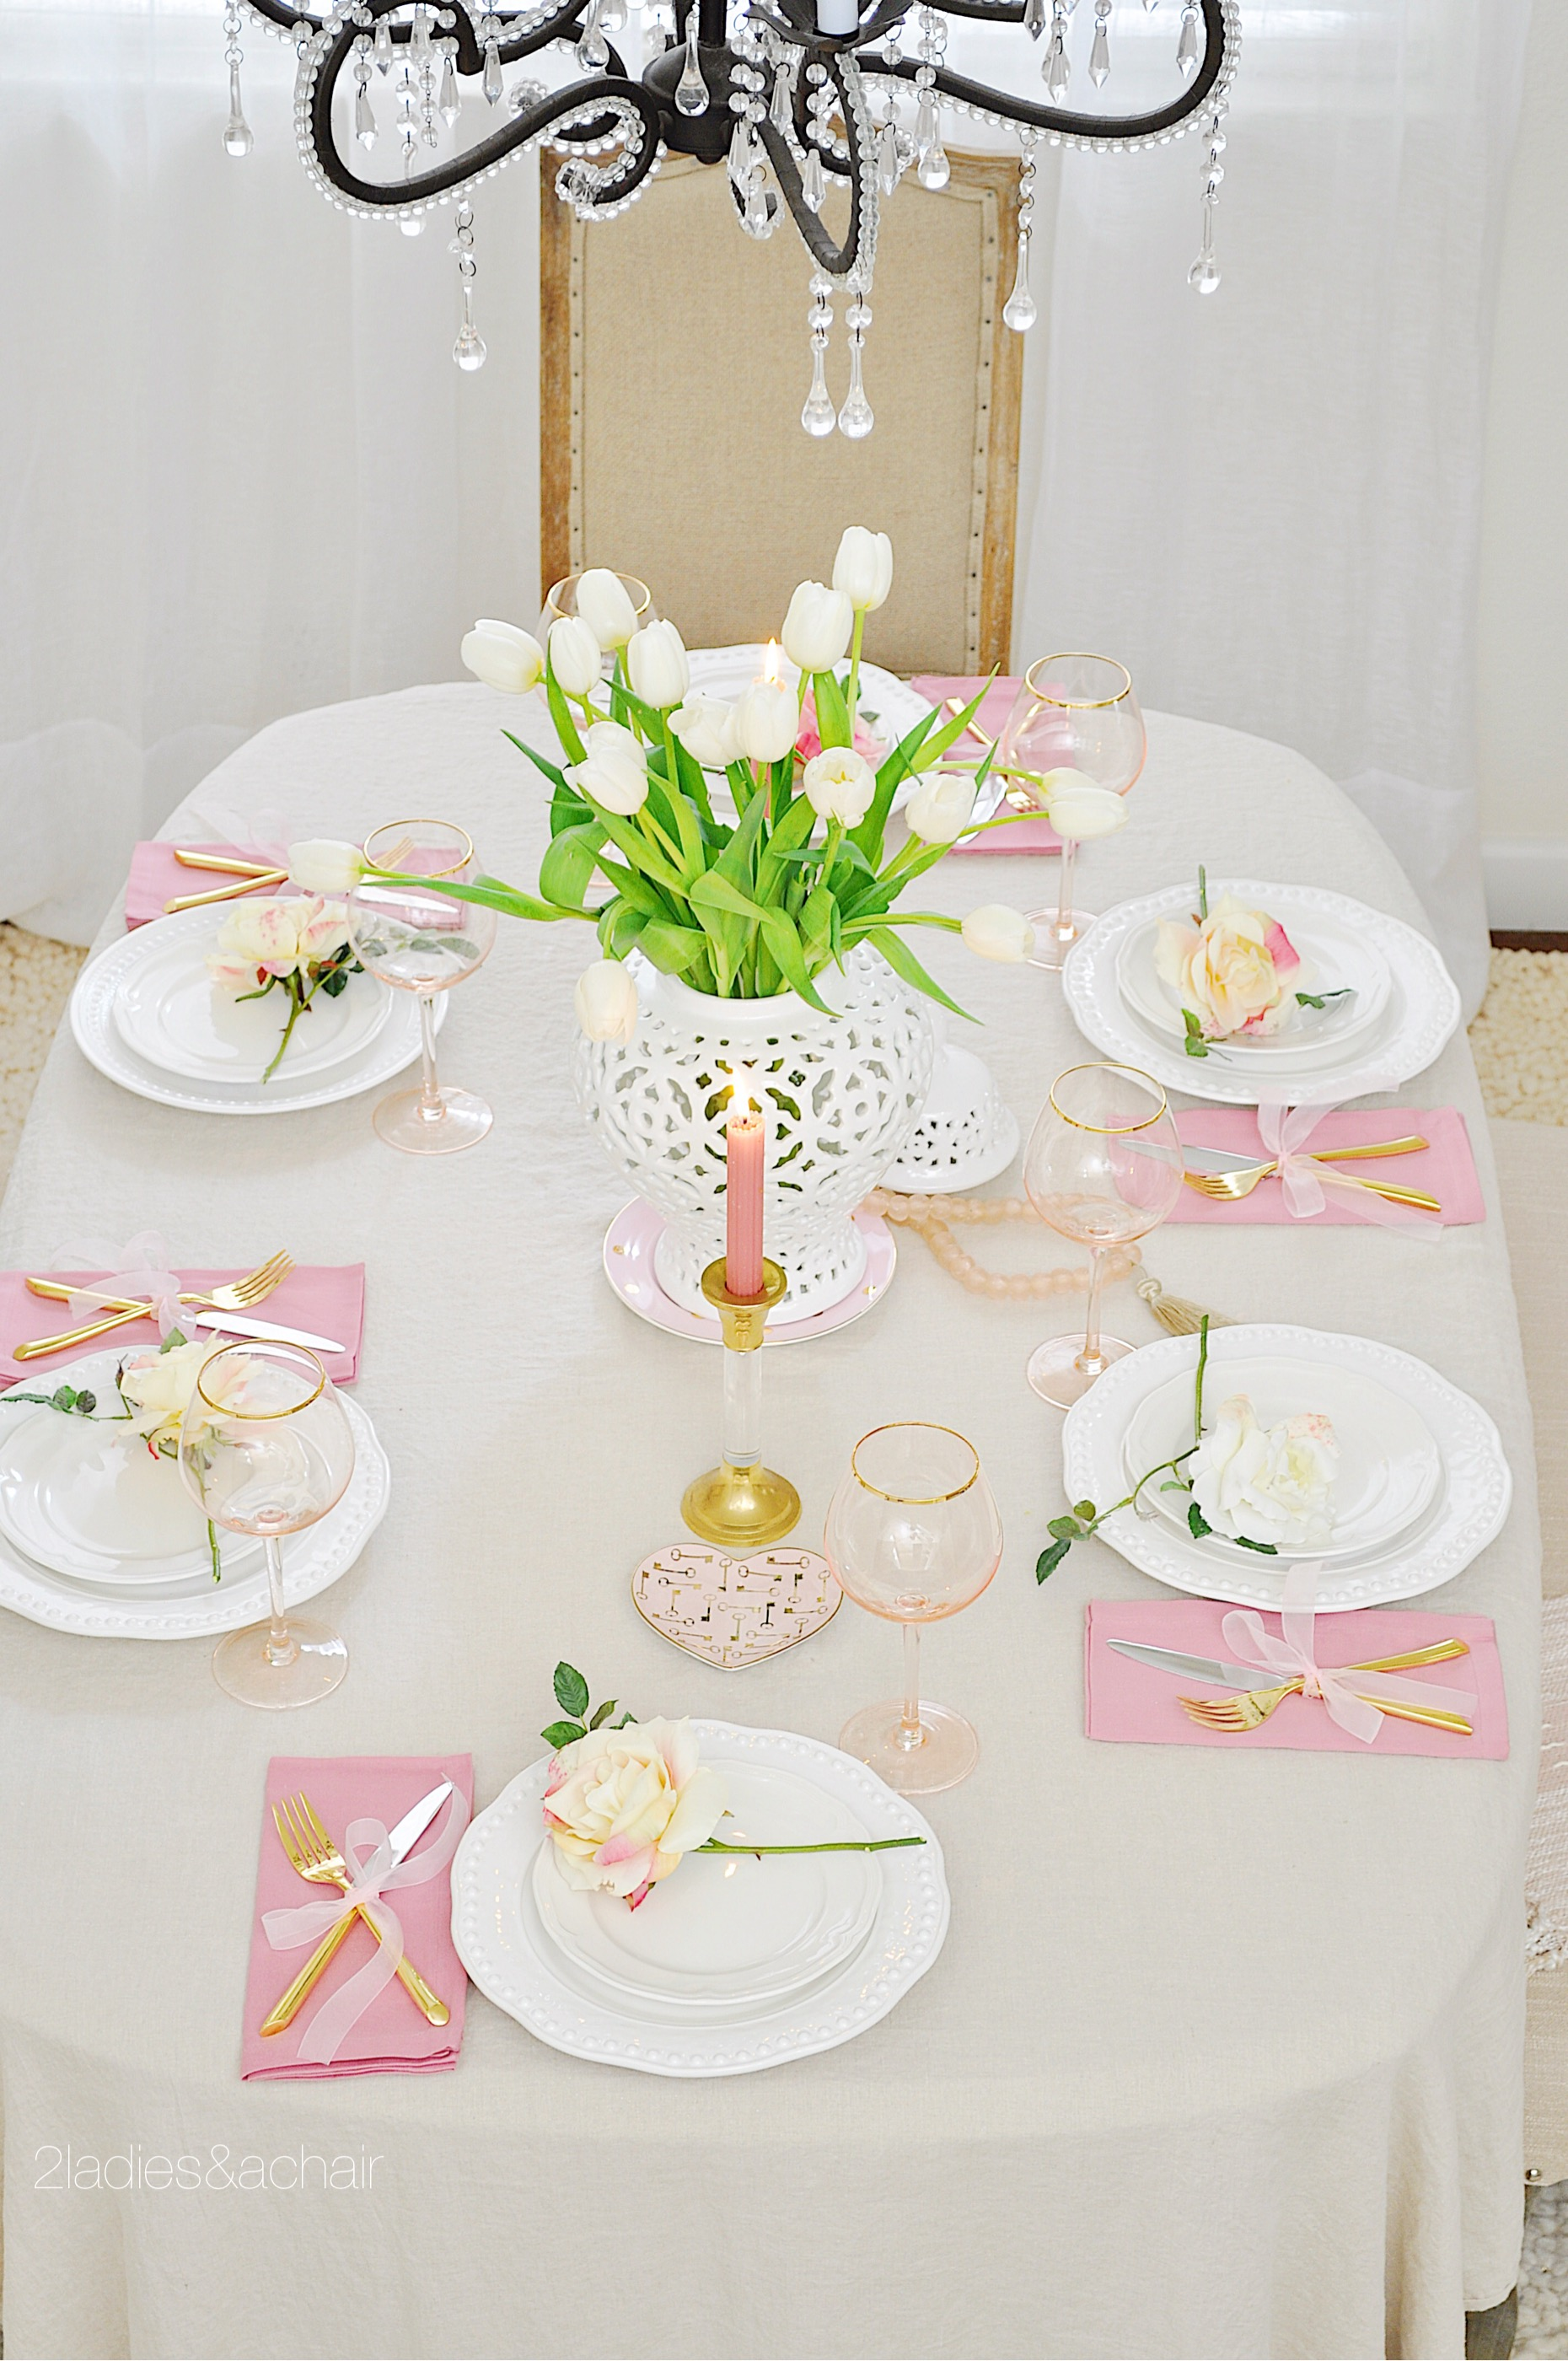 valentine's day table decor IMG_8942.JPG